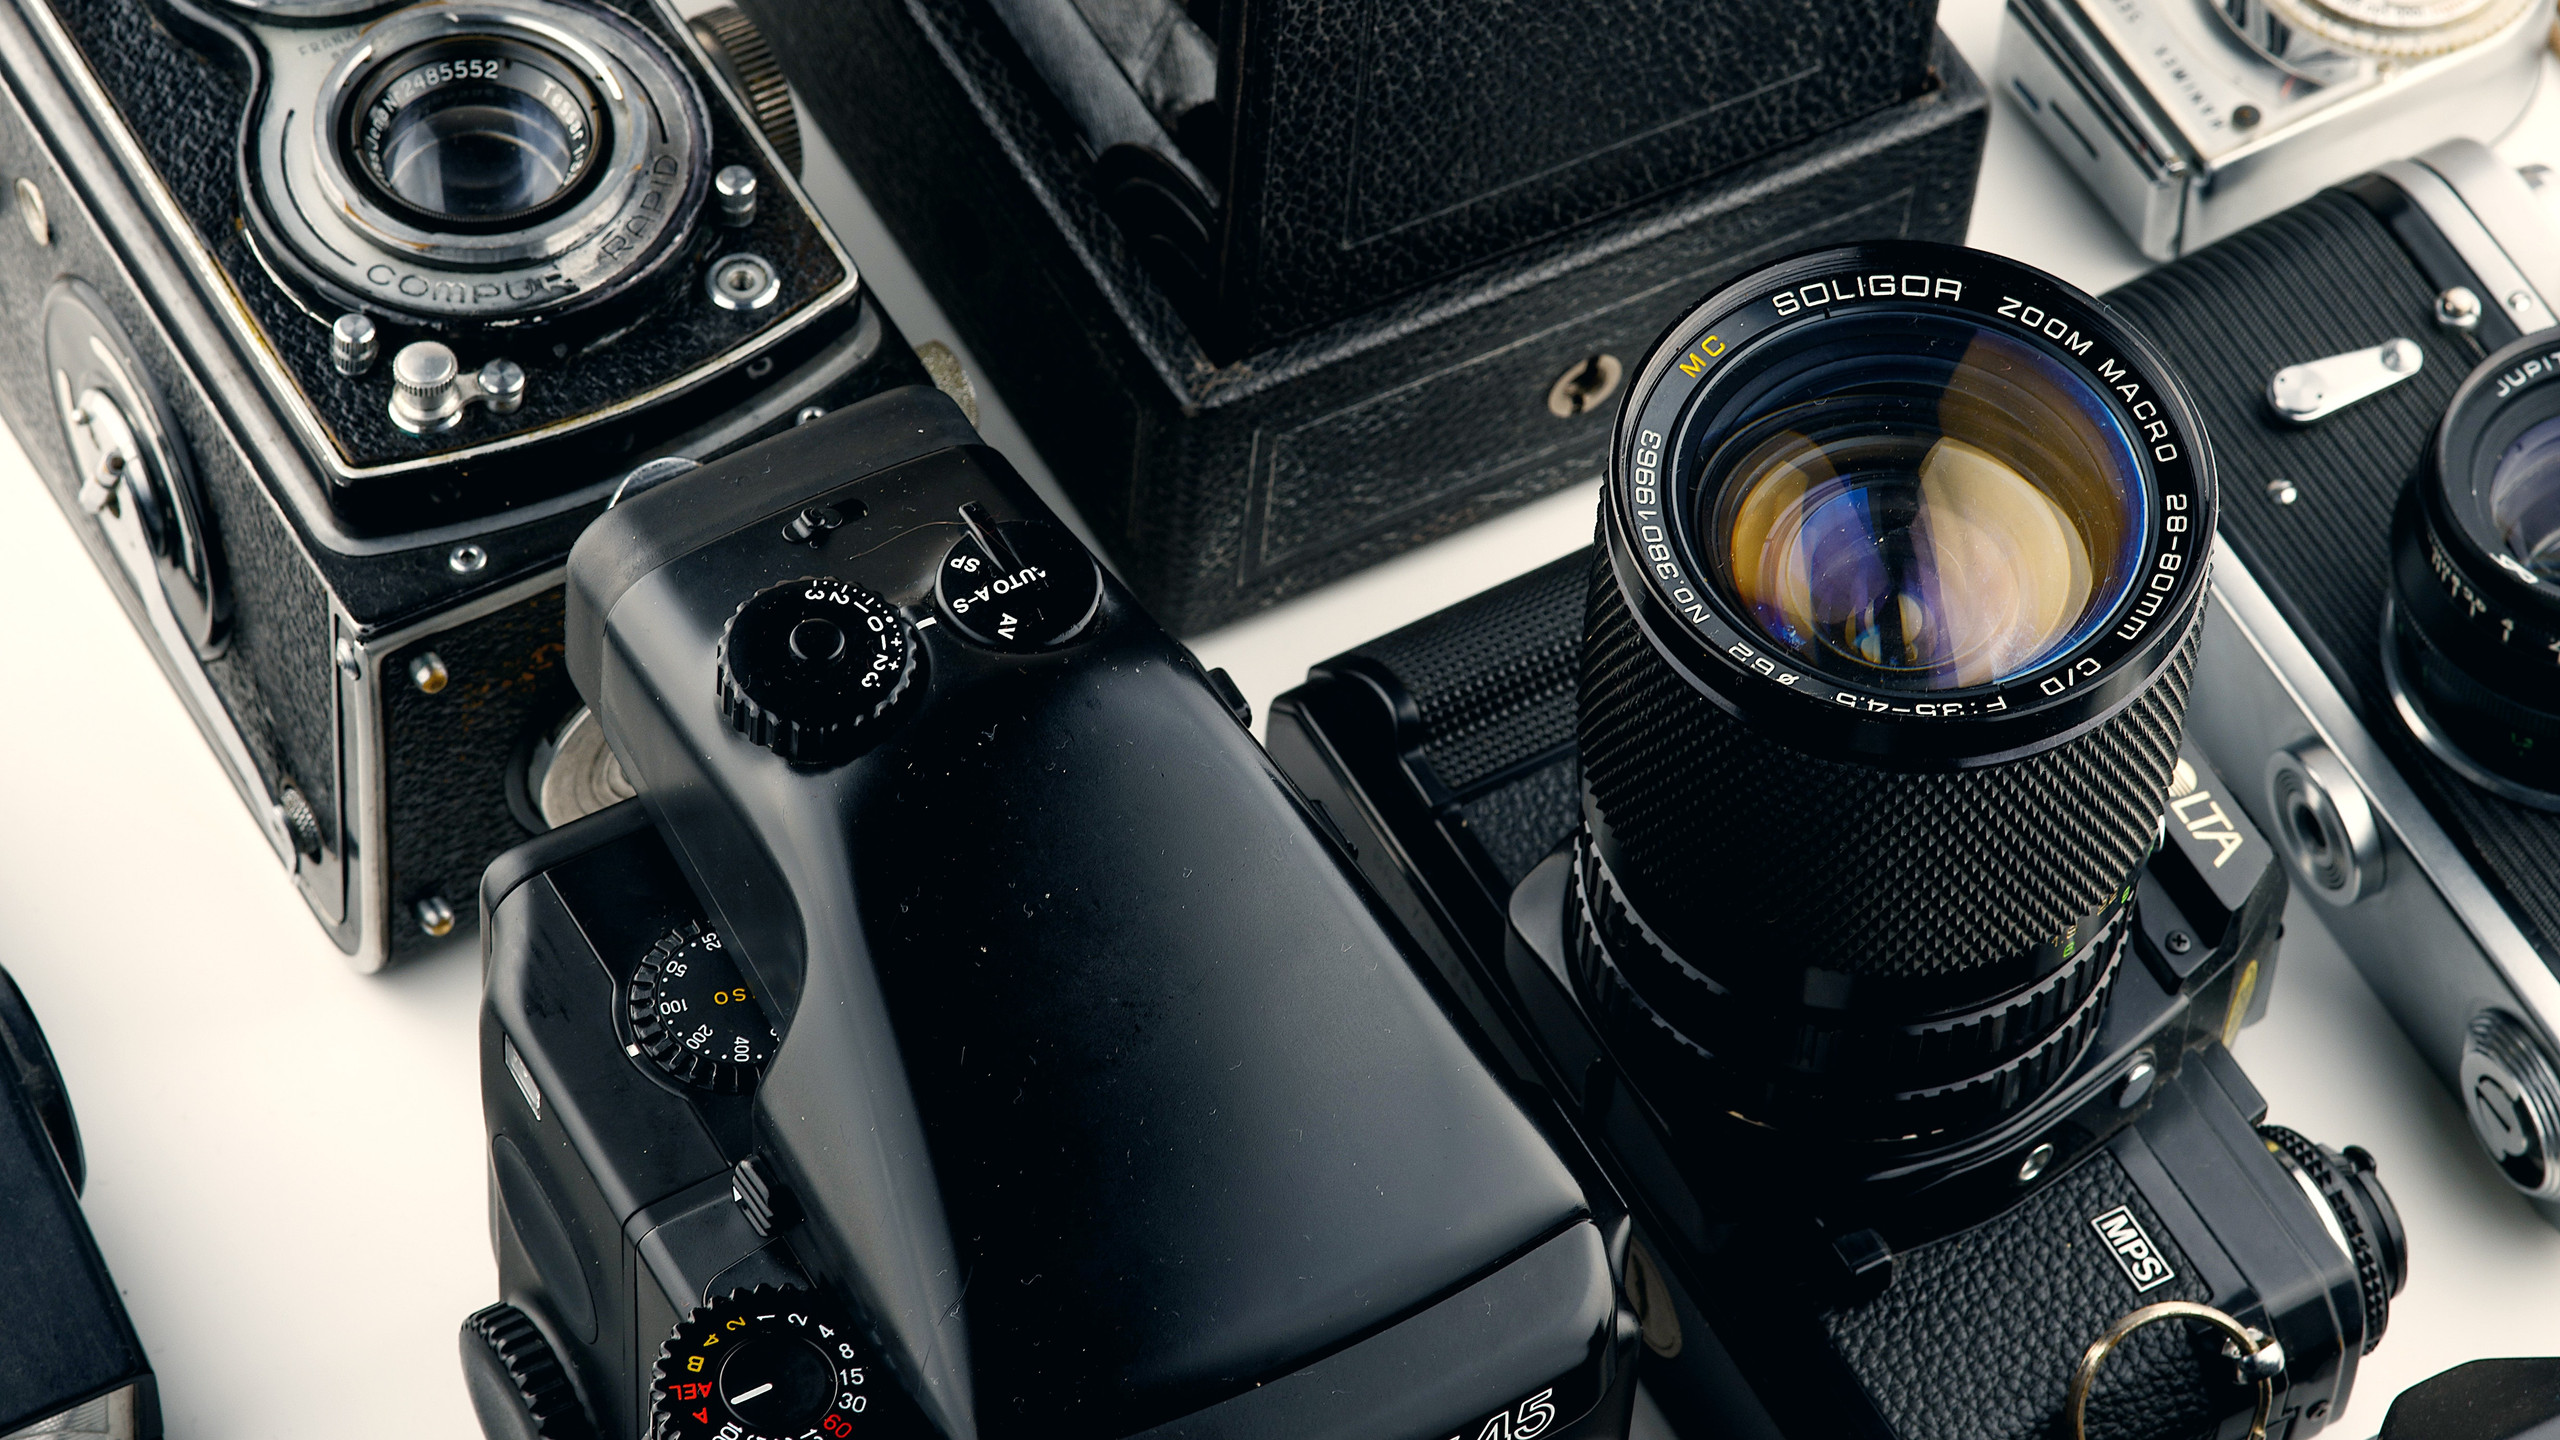 Camera and lenses used for event photography